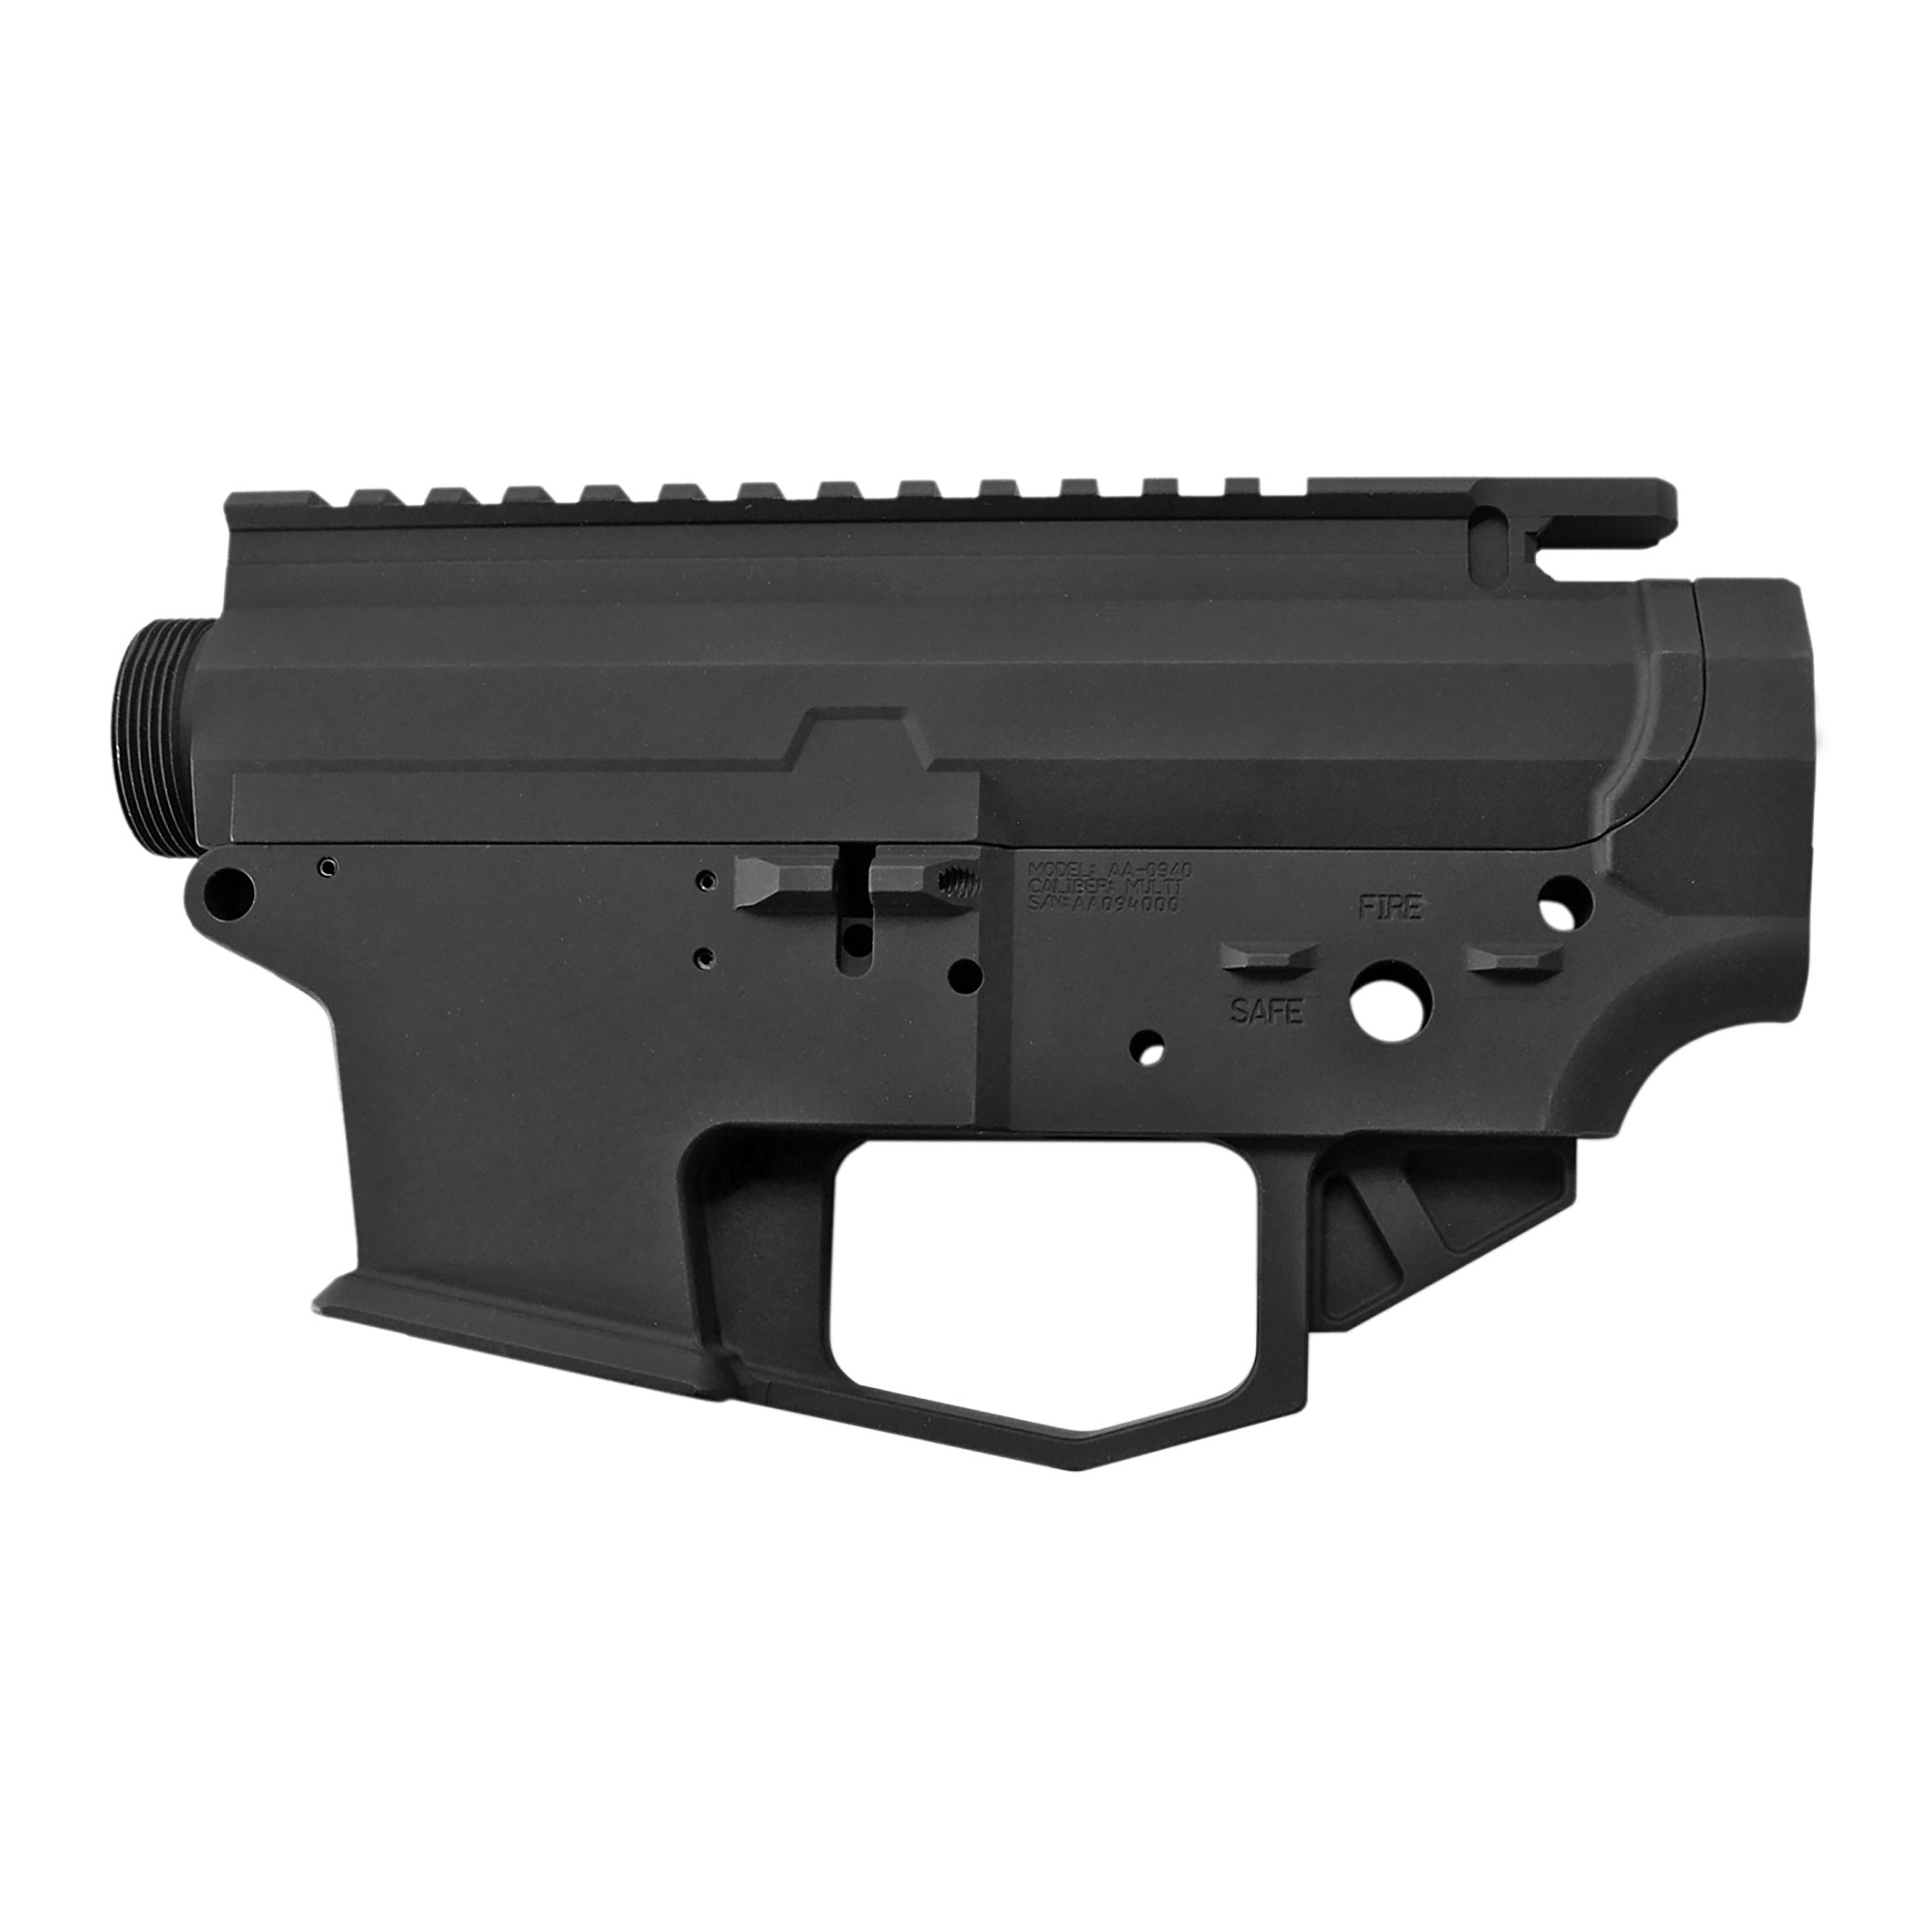 """The Angstadt Arms 0940 matched receiver set is the foundation for a quality pistol caliber AR-15. Machined from a solid block of 7075-T6 billet aluminum"""" the 0940 receiver is compatible with 9mm"""" .40 S&W and 357 Sig GLOCK magazines. Featuring standard AR-15 controls and accepting most aftermarket components"""" the 0940 is instantly familiar to anyone experienced with the AR-15/M4 platform. To aid in reloads"""" the receiver features a flared magazine well and last round bolt hold open design which locks the bolt open on an empty magazine. The slick side upper receiver features an appropriately sized ejection port and no forward assist. The receiver set can be completed with standard mil-spec components."""